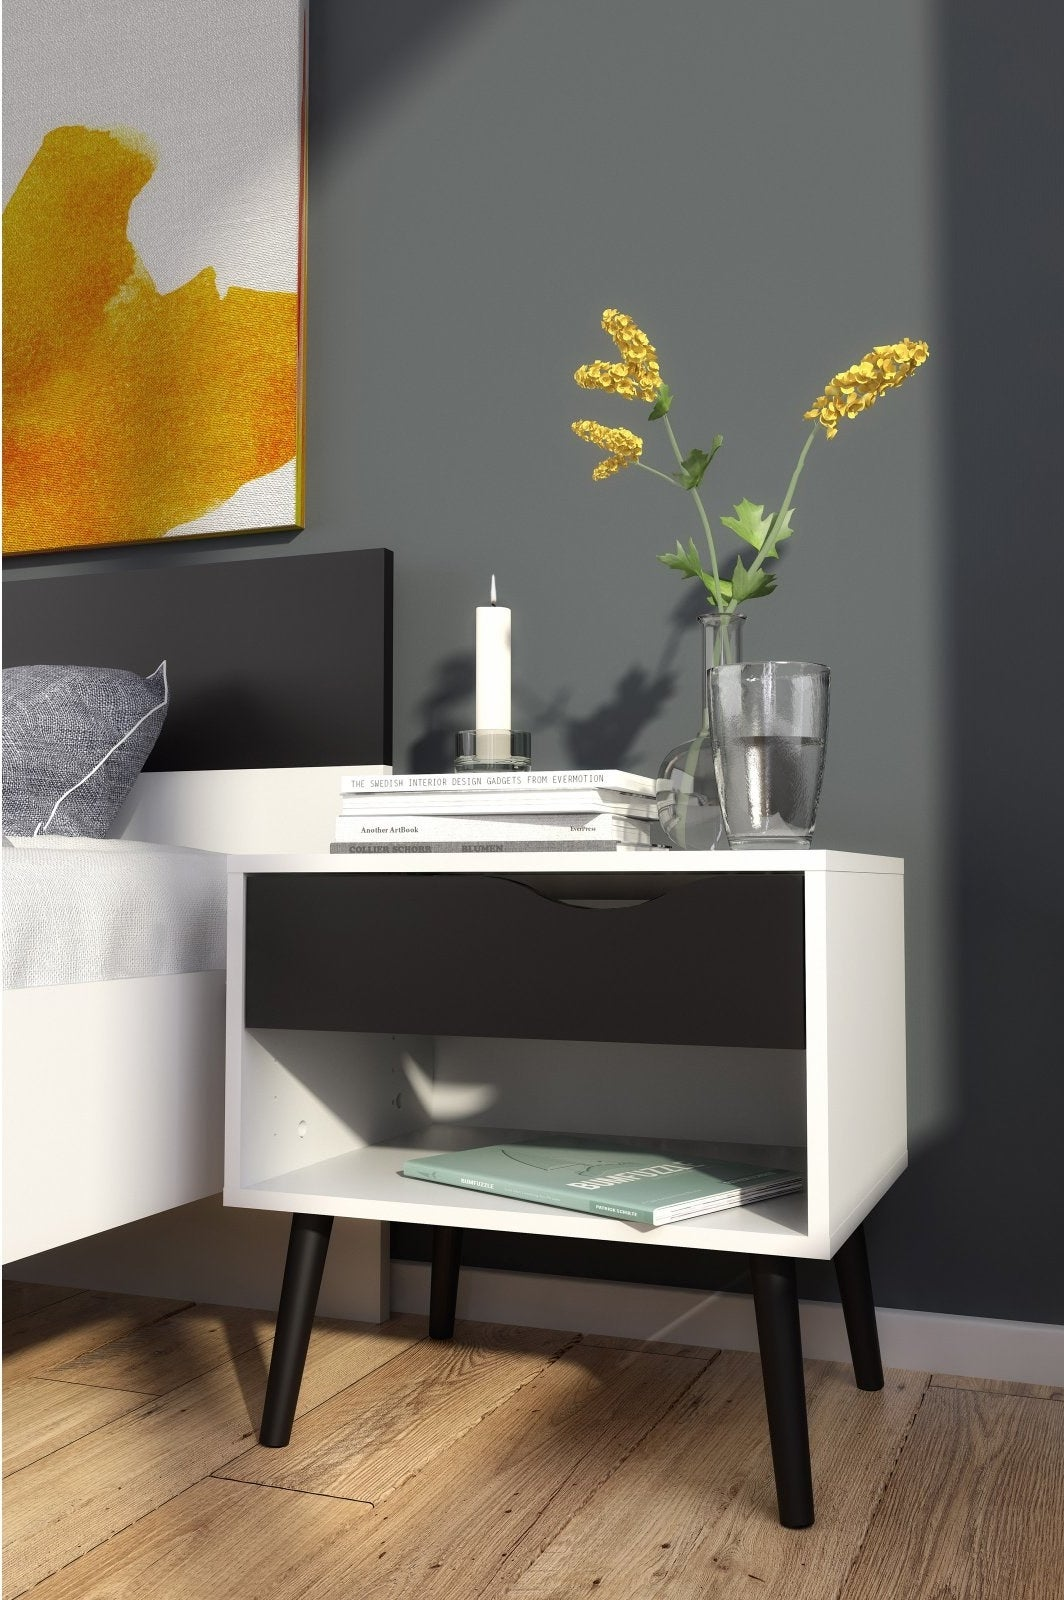 """Promising review: """"I could not be happier with this nightstand. My son's bed is very low to the ground and we struggled to find something that was the right height. This worked perfectly. It's actually very high quality for the price. The drawer is deep enough to fit a lot of his stuff in and the shelf is great for books at night."""" —AmyPrice: $59.40 (available in two colors)"""